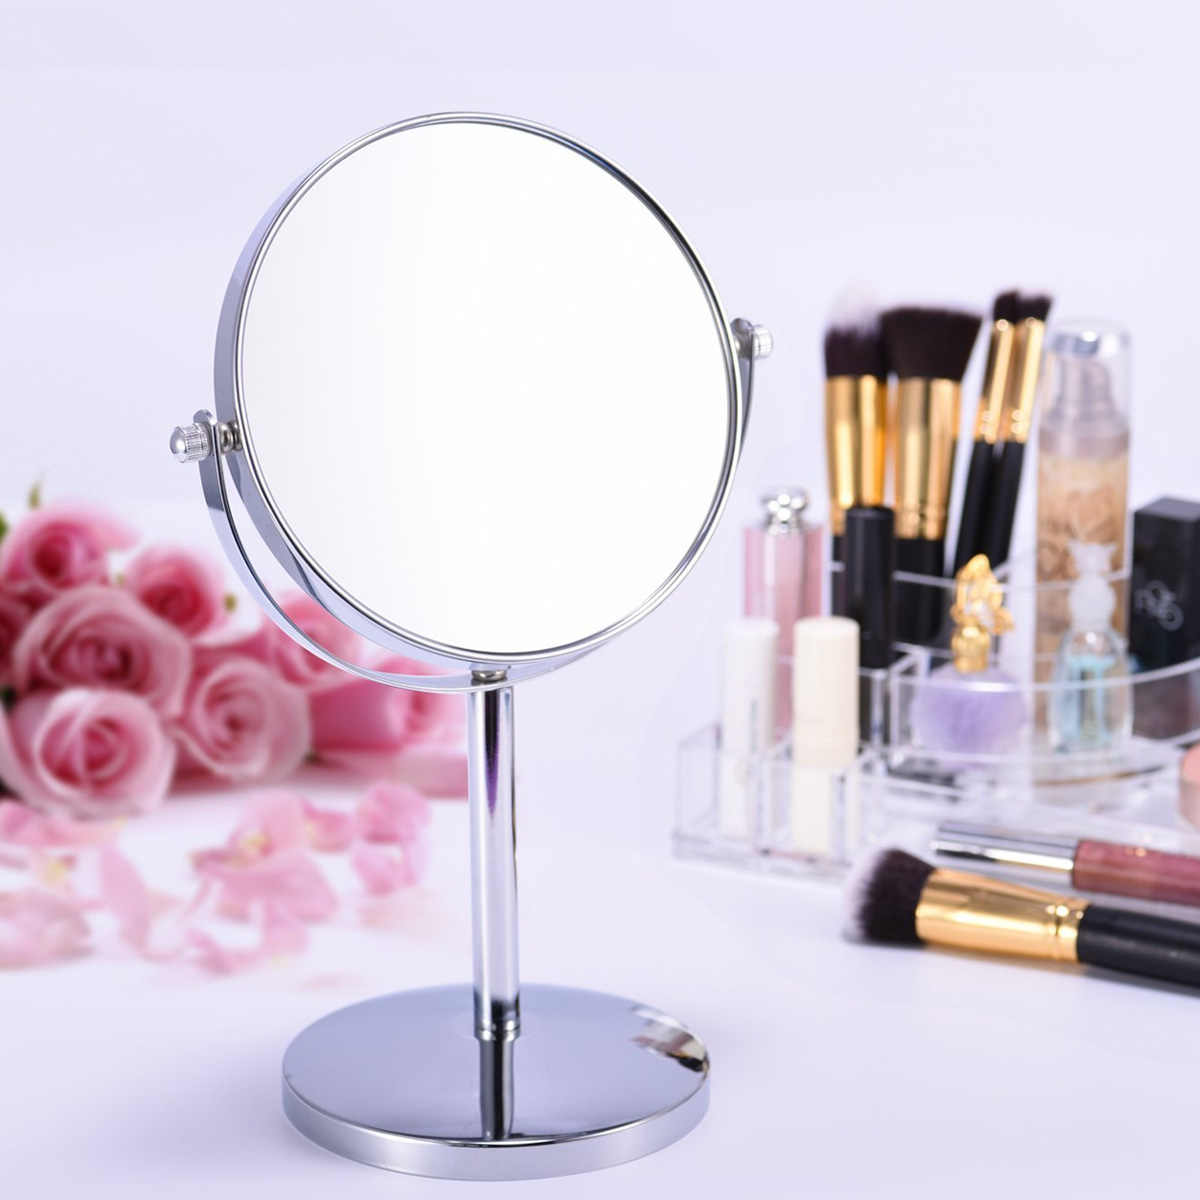 Metal Magnifying Cosmetic Mirror Double Sided Lady Table Desk Standing Dresser Make Up Mirror Round Desktop Rotating Mirror